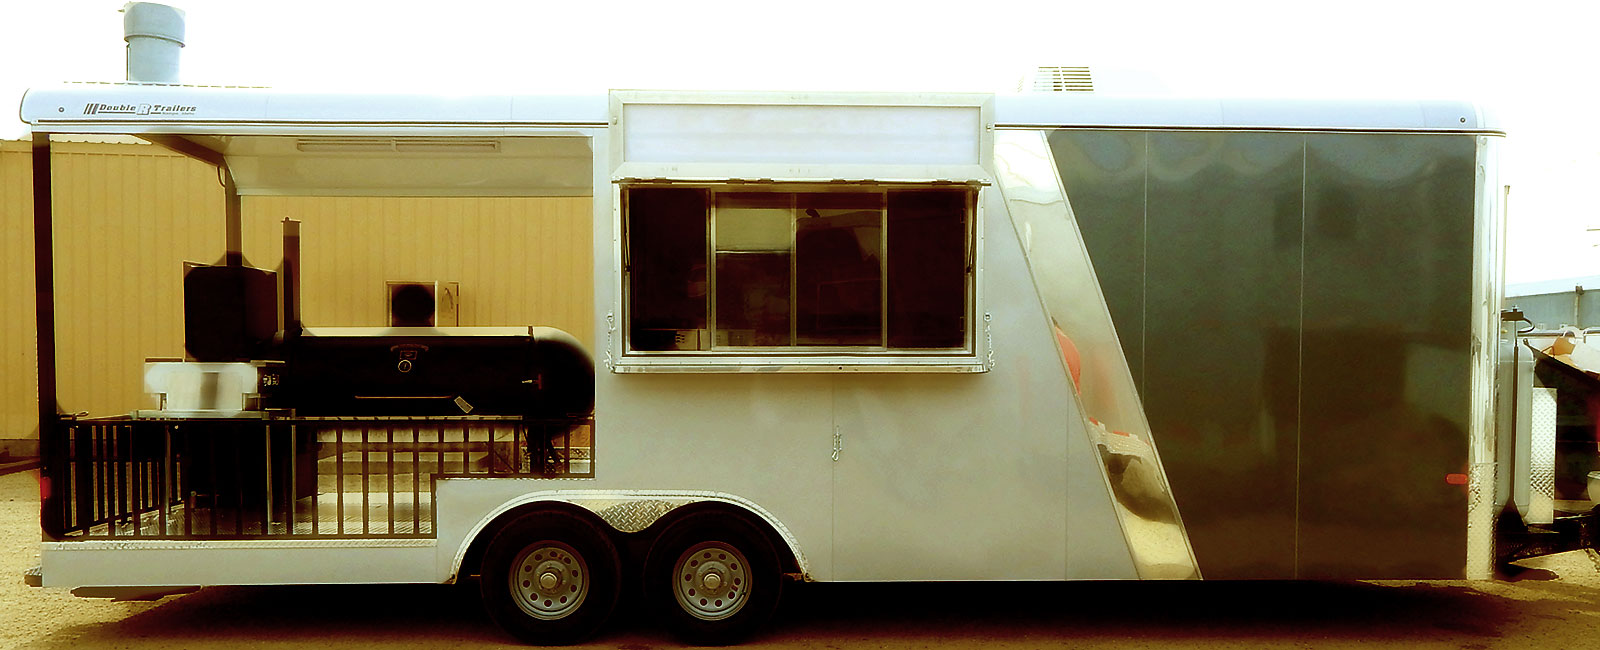 Double R Trailers Custom Enclosed In Nampa Id Snowmobile Trailer Wiring Diagram Concession